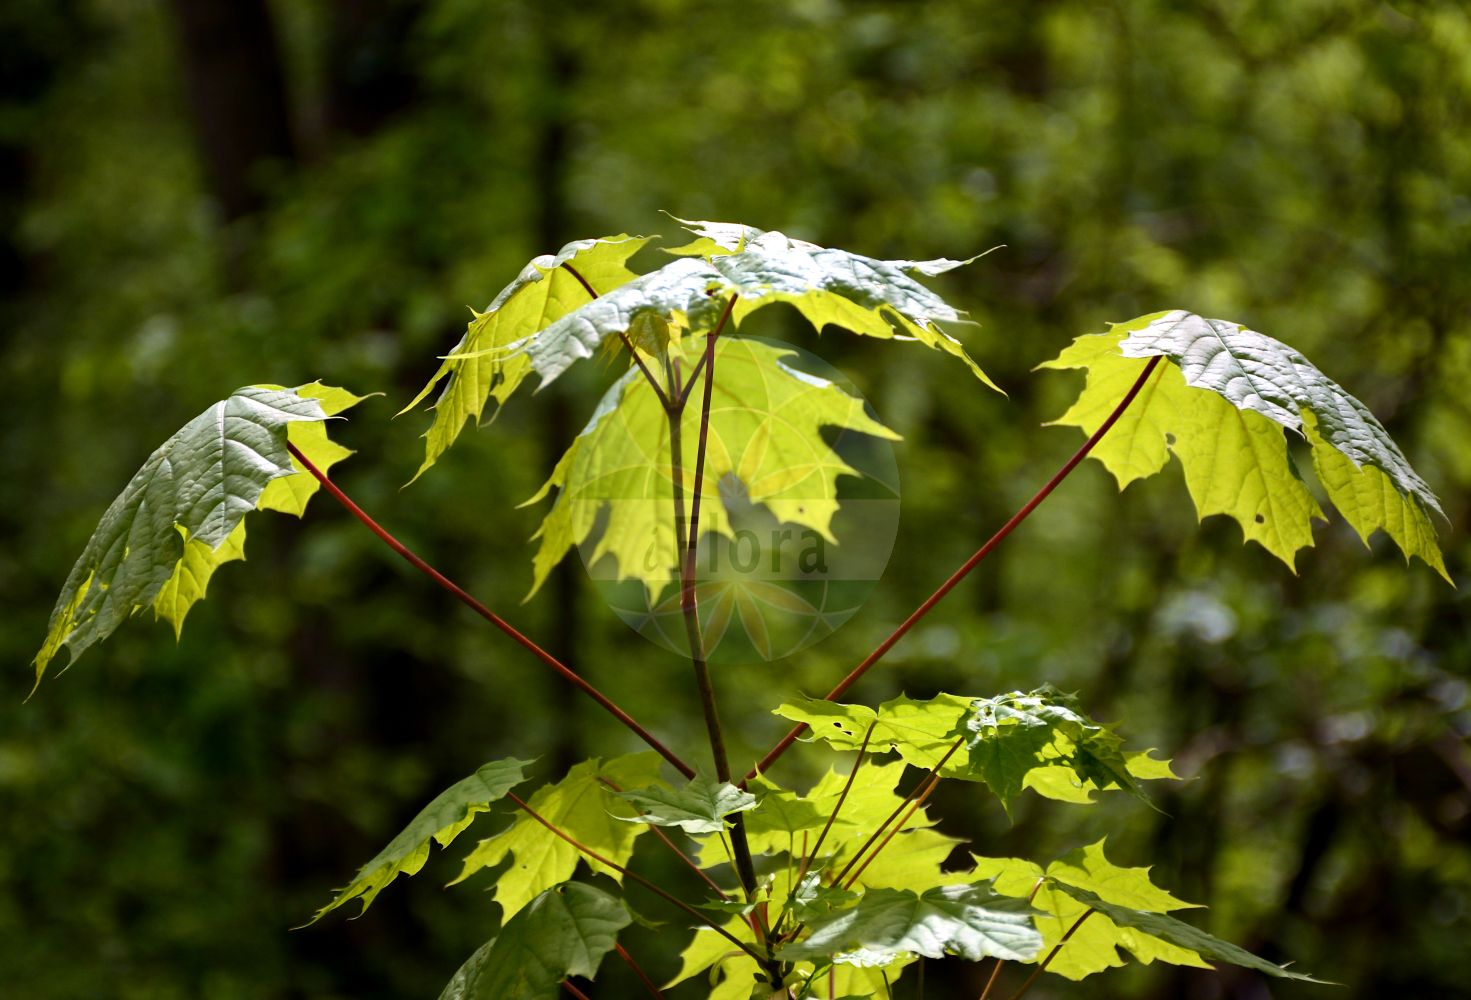 Foto von Acer platanoides (Spitz-Ahorn - Norway Maple). Das Bild zeigt Blatt. Das Foto wurde in Oberursel, Hochtaunuskreis, Hessen, Deutschland, Oberrheinisches Tiefland und Rhein-Main-Ebene, Untermainebene aufgenommen. ---- Photo of Acer platanoides (Spitz-Ahorn - Norway Maple).The image is showing leaf.The picture was taken in Oberursel, Hochtaunus district, Hesse, Germany, Oberrheinisches Tiefland and Rhein-Main-Ebene, Untermainebene. (Acer platanoides,Spitz-Ahorn,Norway Maple,Europaeischer ,Plane Maple,Acer,Ahorn,Maple,Sapindaceae,Seifenbaumgewaechse,Soapberry family,Blatt,leaf)